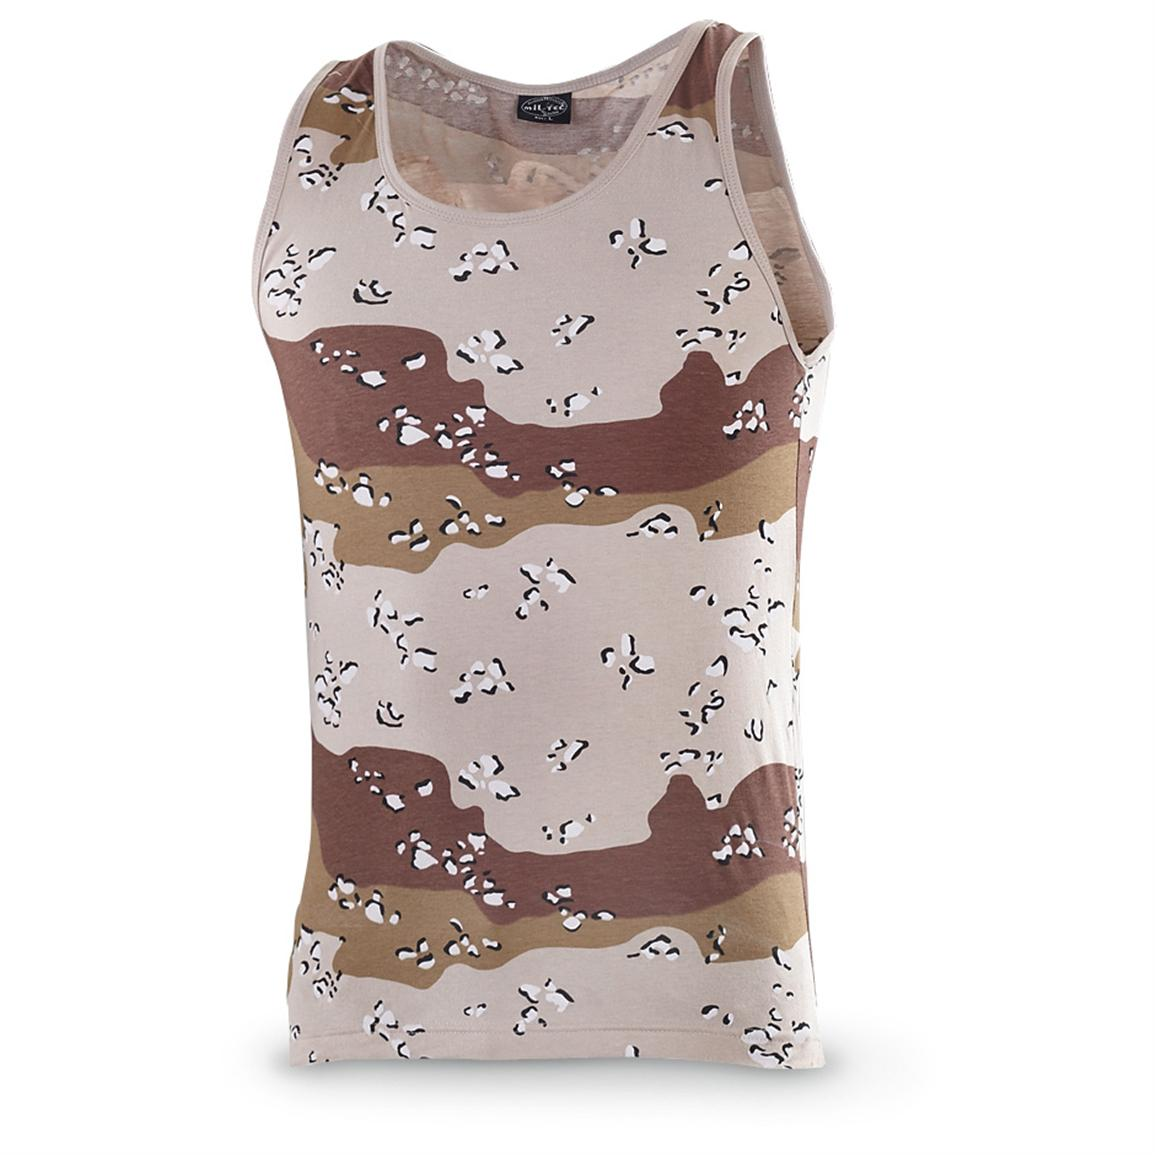 2 Mil-Tec® Military-style Tank Tops, 6-color Desert Camo